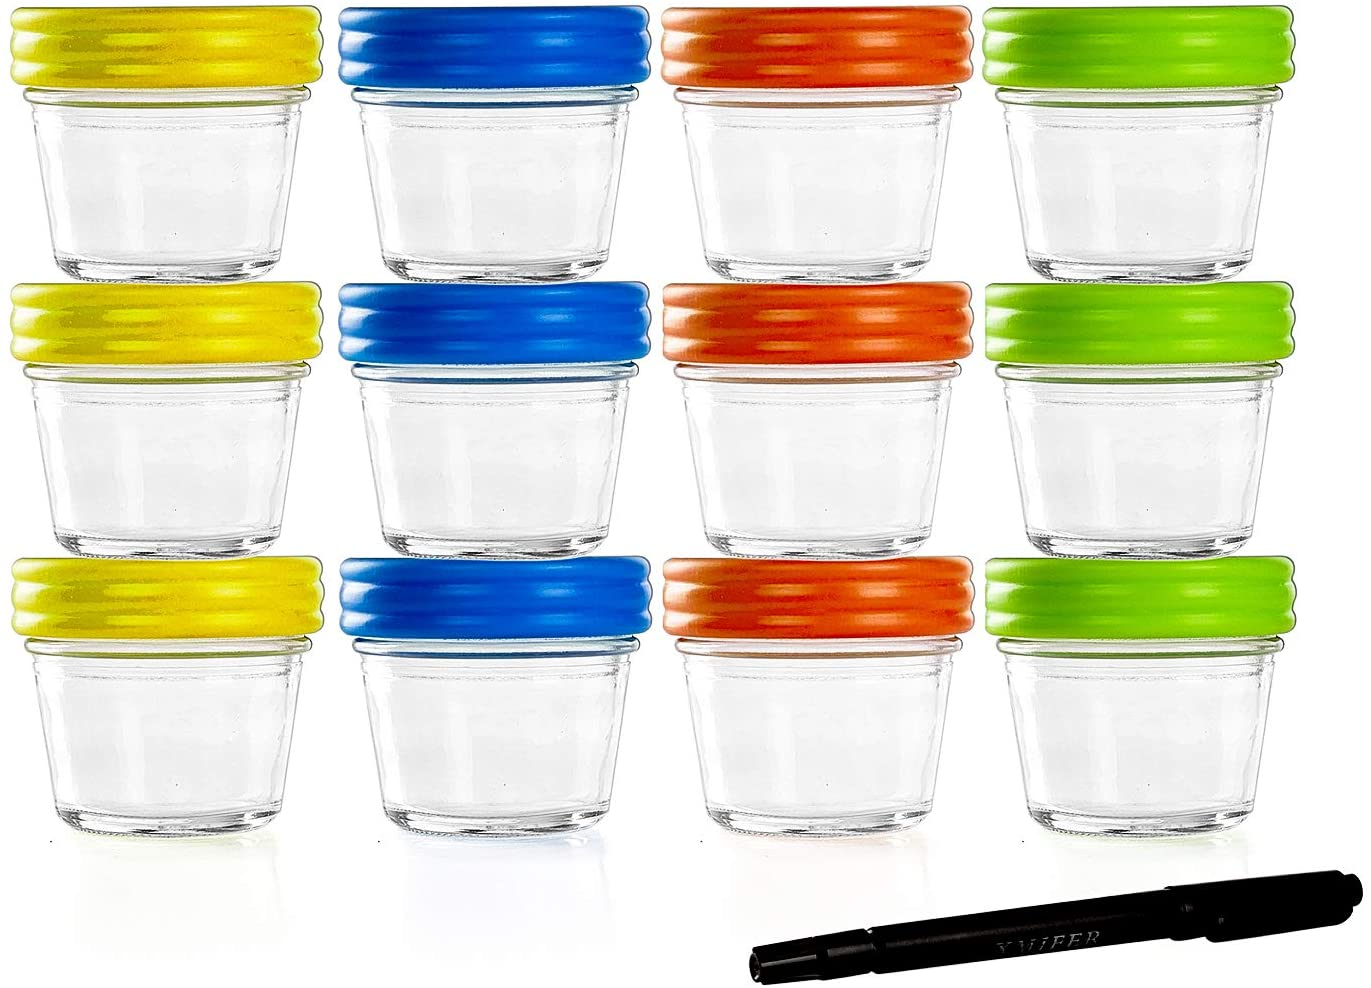 Baby Food Storage Containers Glass Jars with Leakproof & Airtight Lids-BPA Free-Freezer & Dishwasher Safe-4oz-Pack of 12